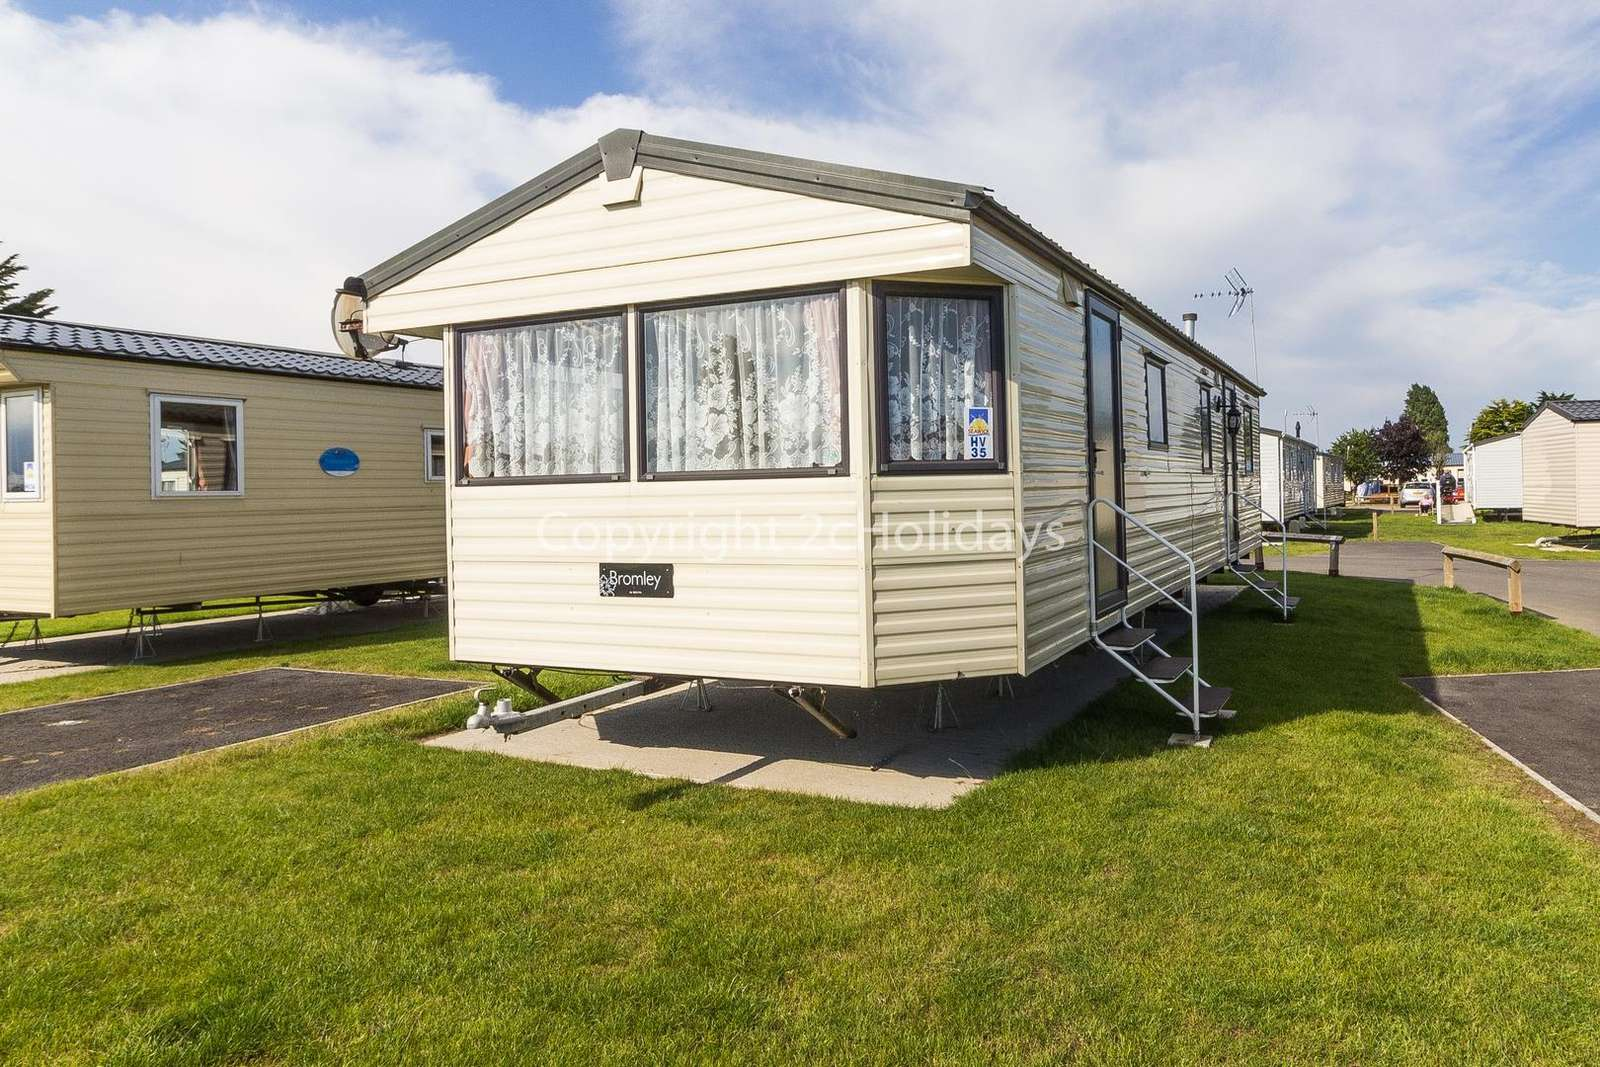 On a fantastic holiday park with great amenities and the beach nearby.